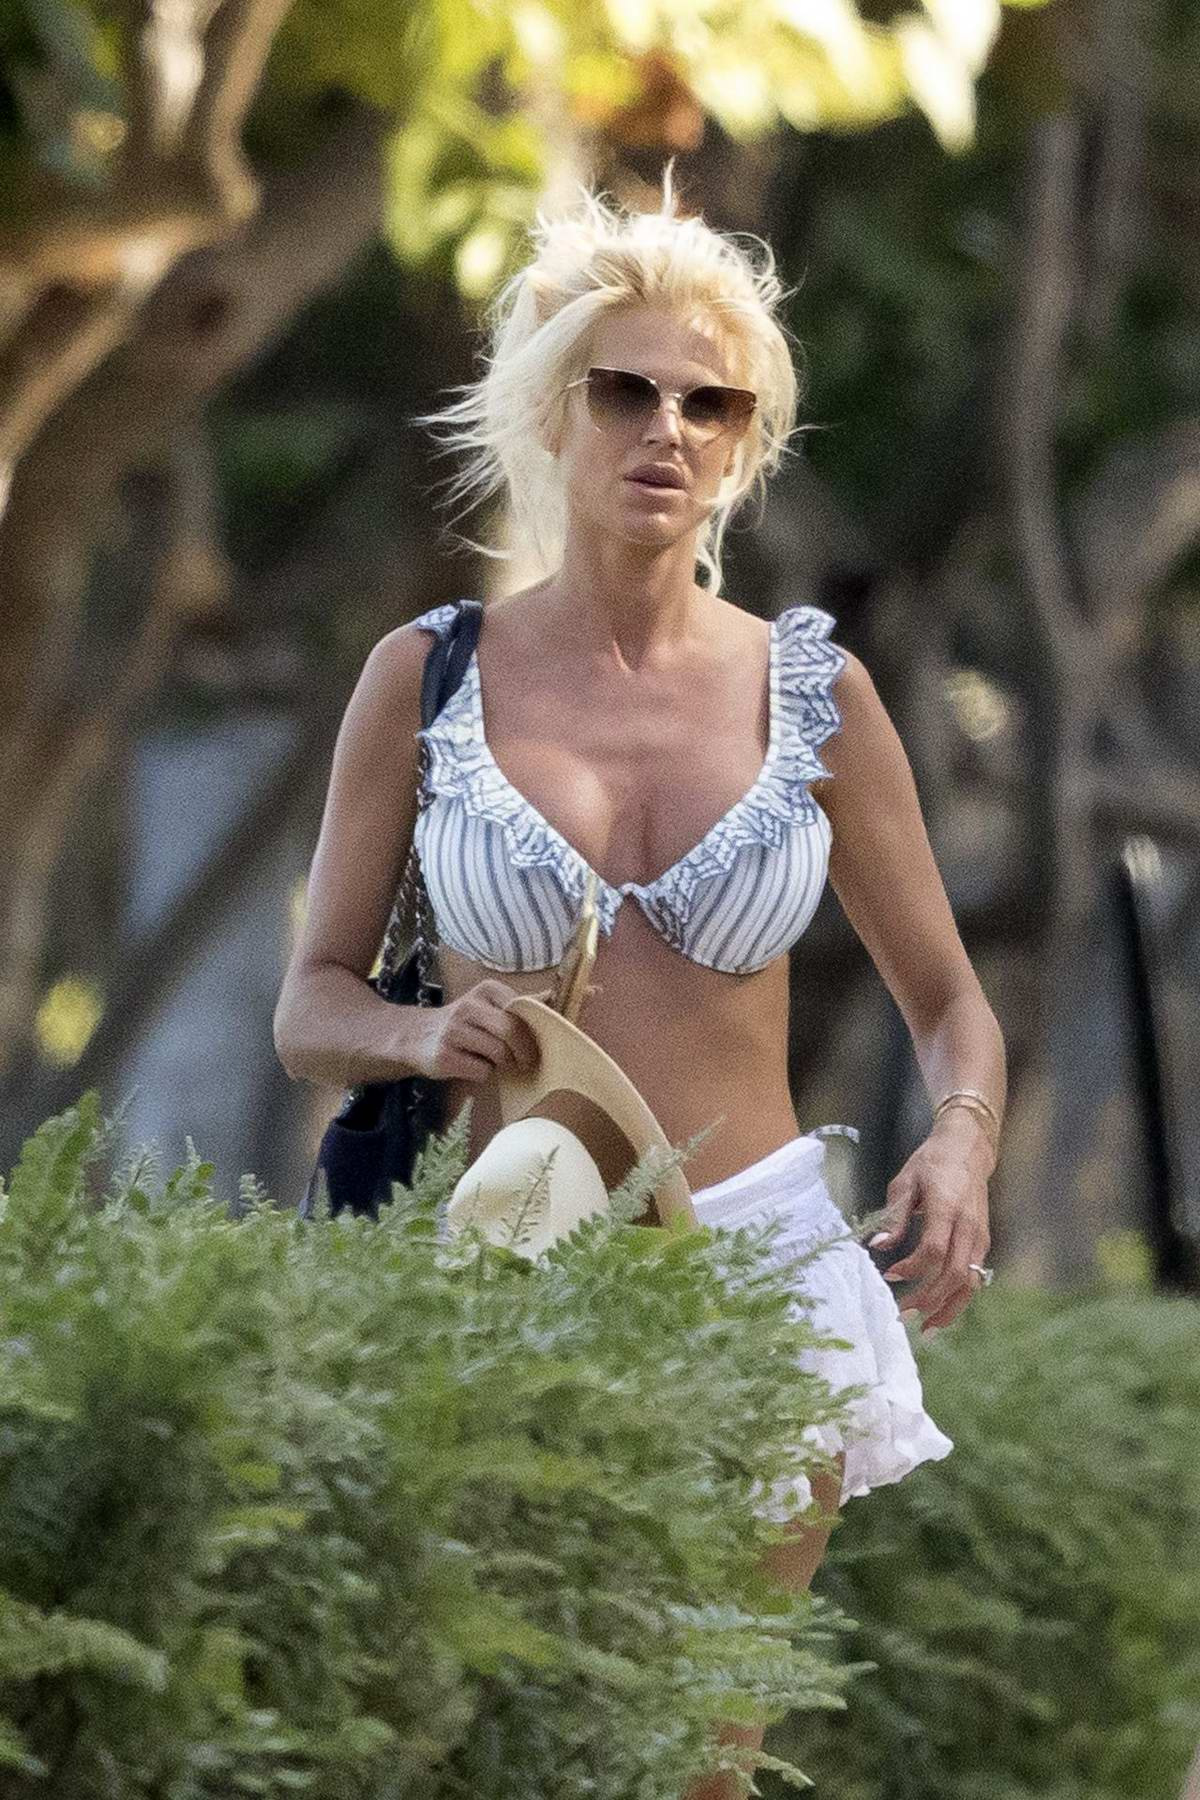 Victoria Silvstedt sports striped bikini as she spends a relaxing day at the beach in Miami, Florida